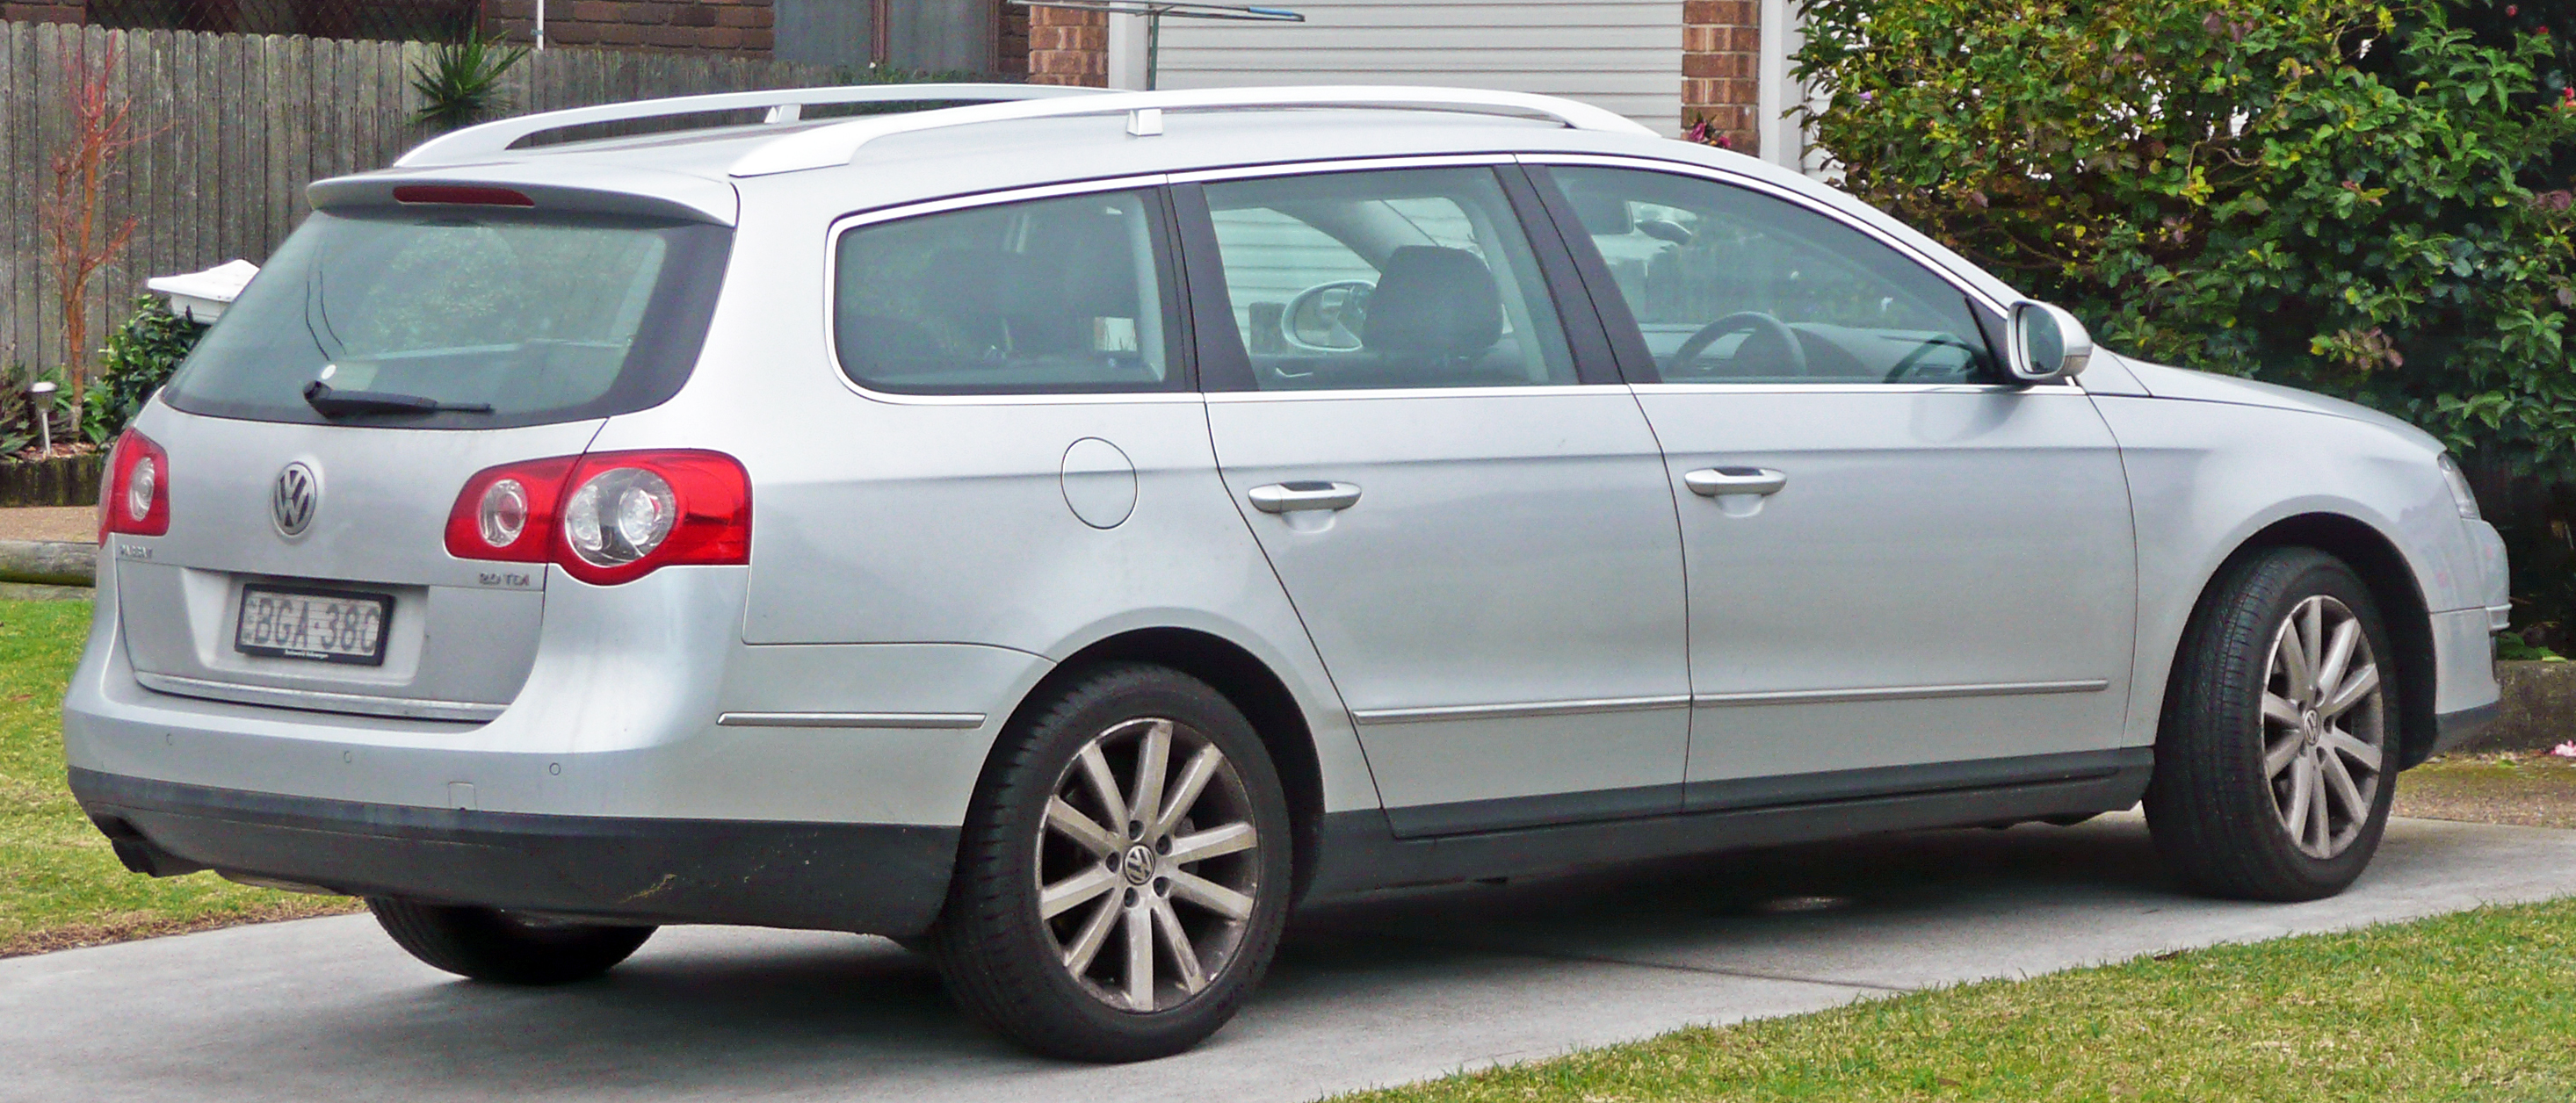 file 2006 2010 volkswagen passat 3c 2 0 tdi station wagon 2010 06 17 jpg wikimedia commons. Black Bedroom Furniture Sets. Home Design Ideas